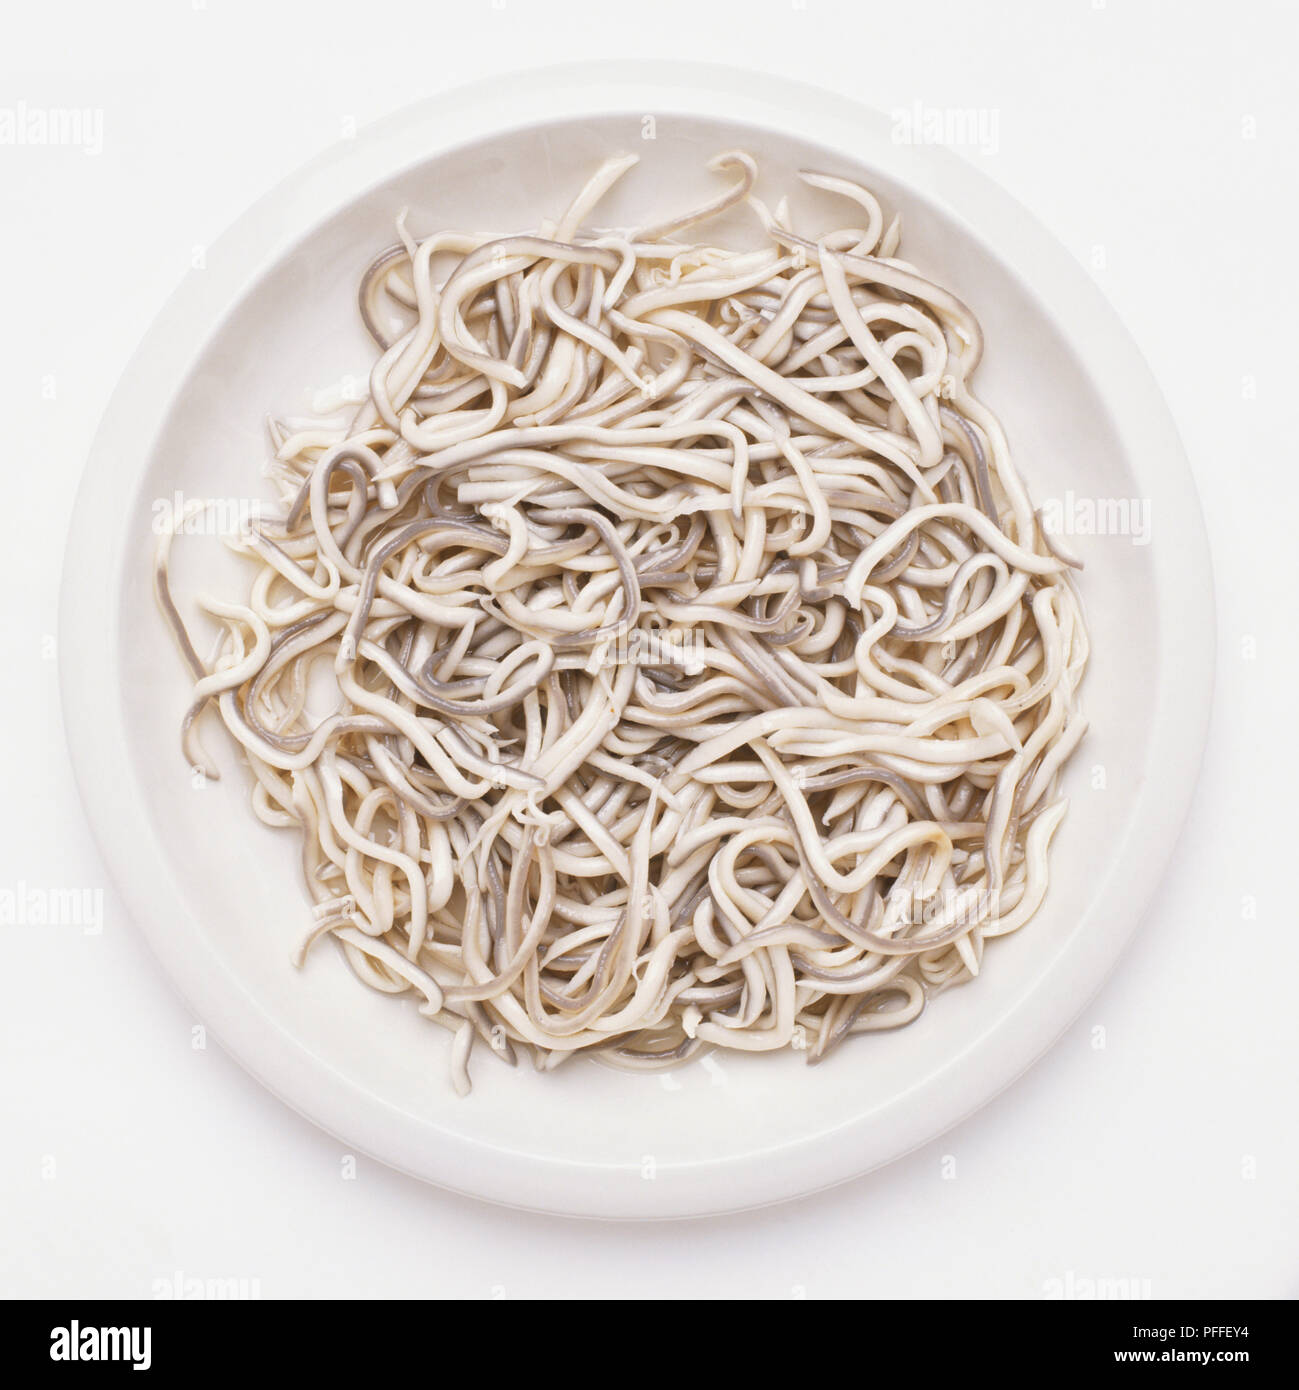 Plate of agulas, or elvers, close up Stock Photo